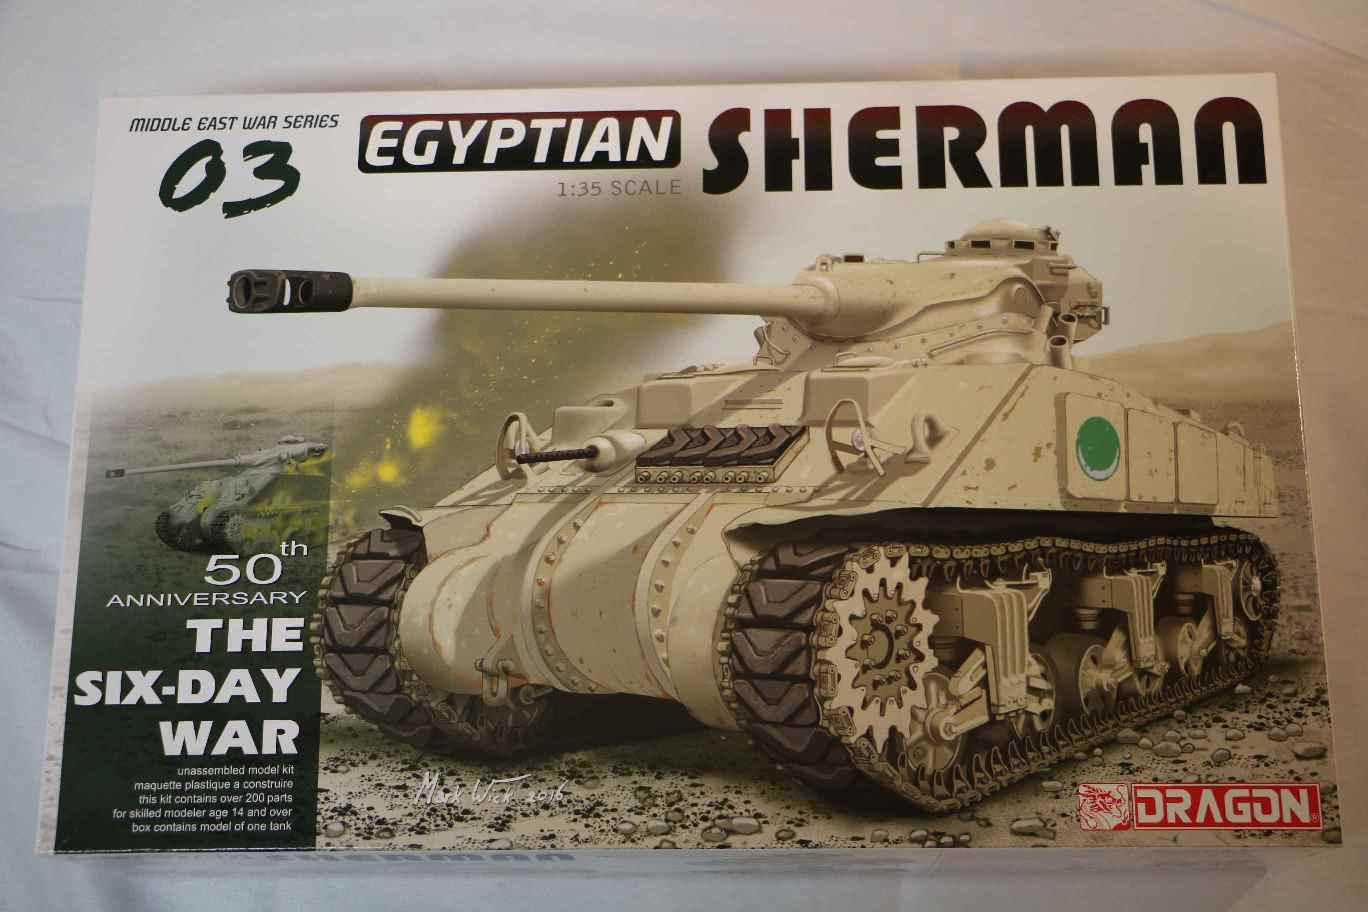 DRA3570 - Dragon 1/35 Egyptian Sherman 50th Anniversary